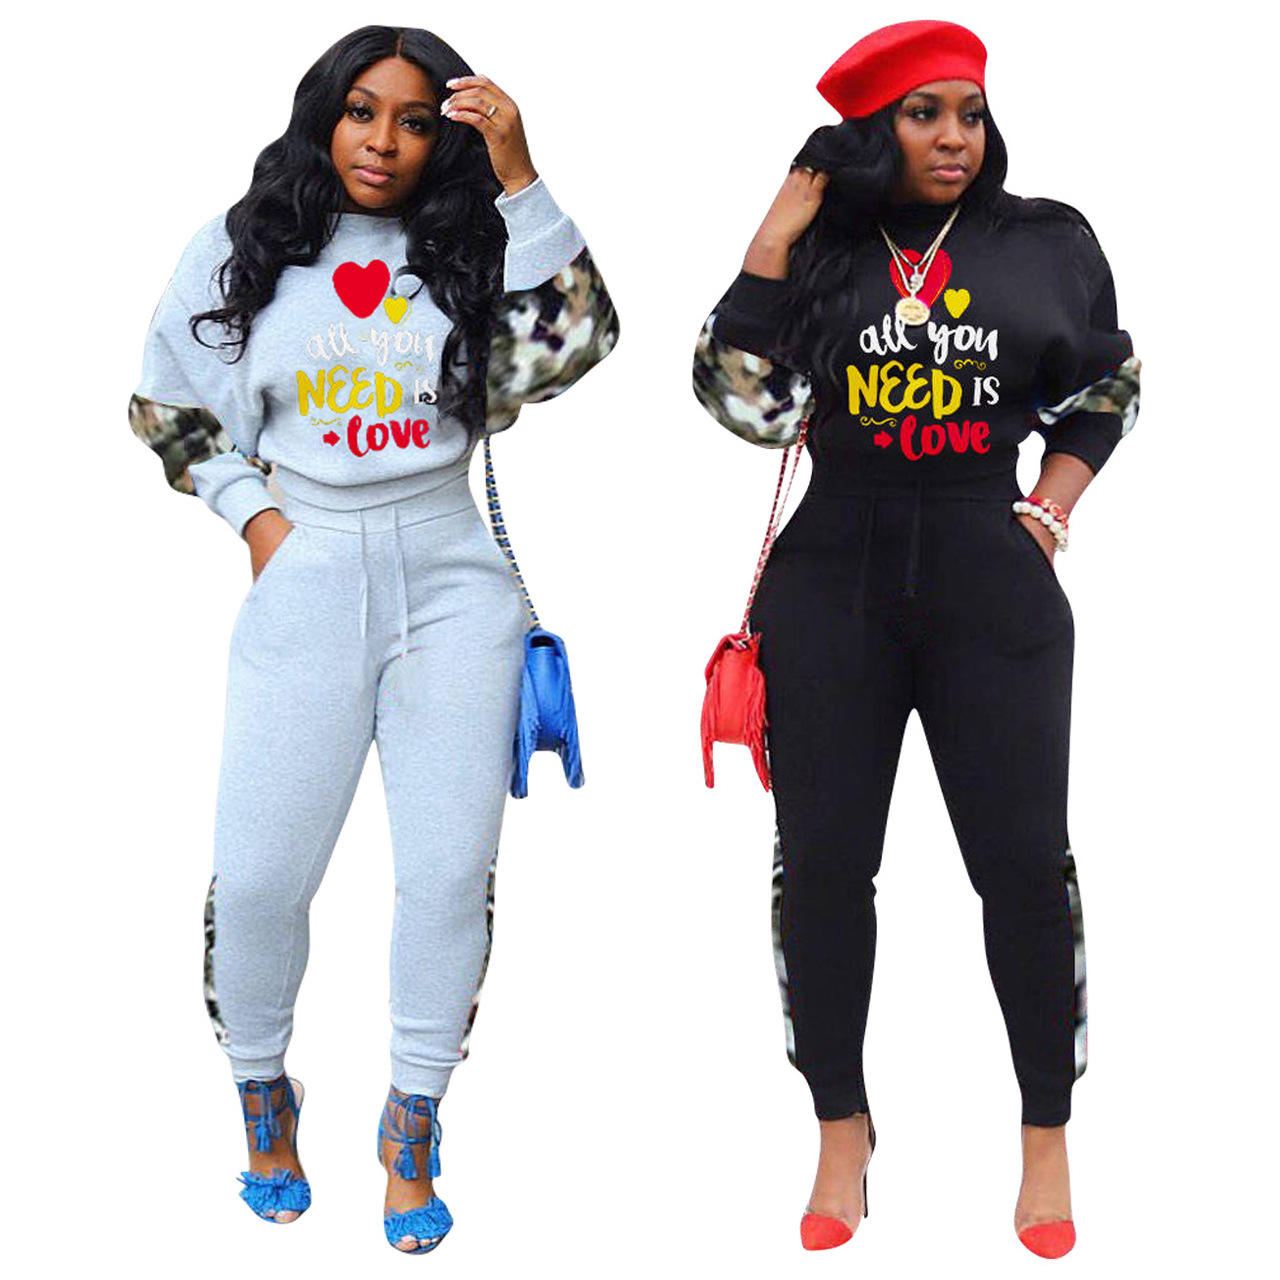 """Casual Valentine 2 PCS Set Women Clothes Outfits Fashion Letter Printed """"all You Need Is Love"""" Long Sleeve Top and Pants Suits